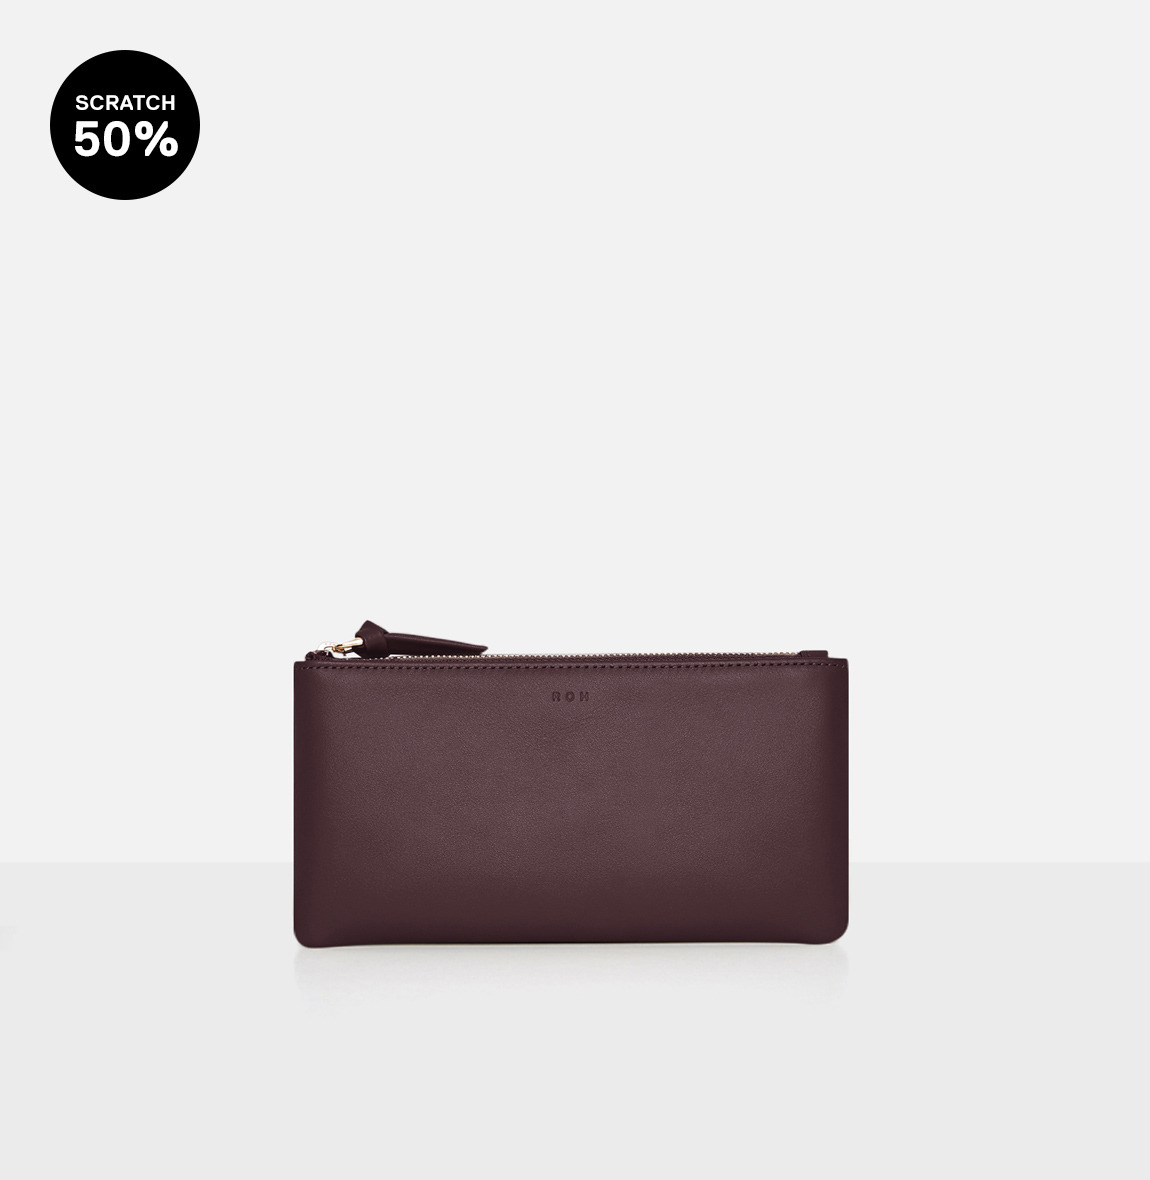 Square large zip wallet Burgundy-스크레치